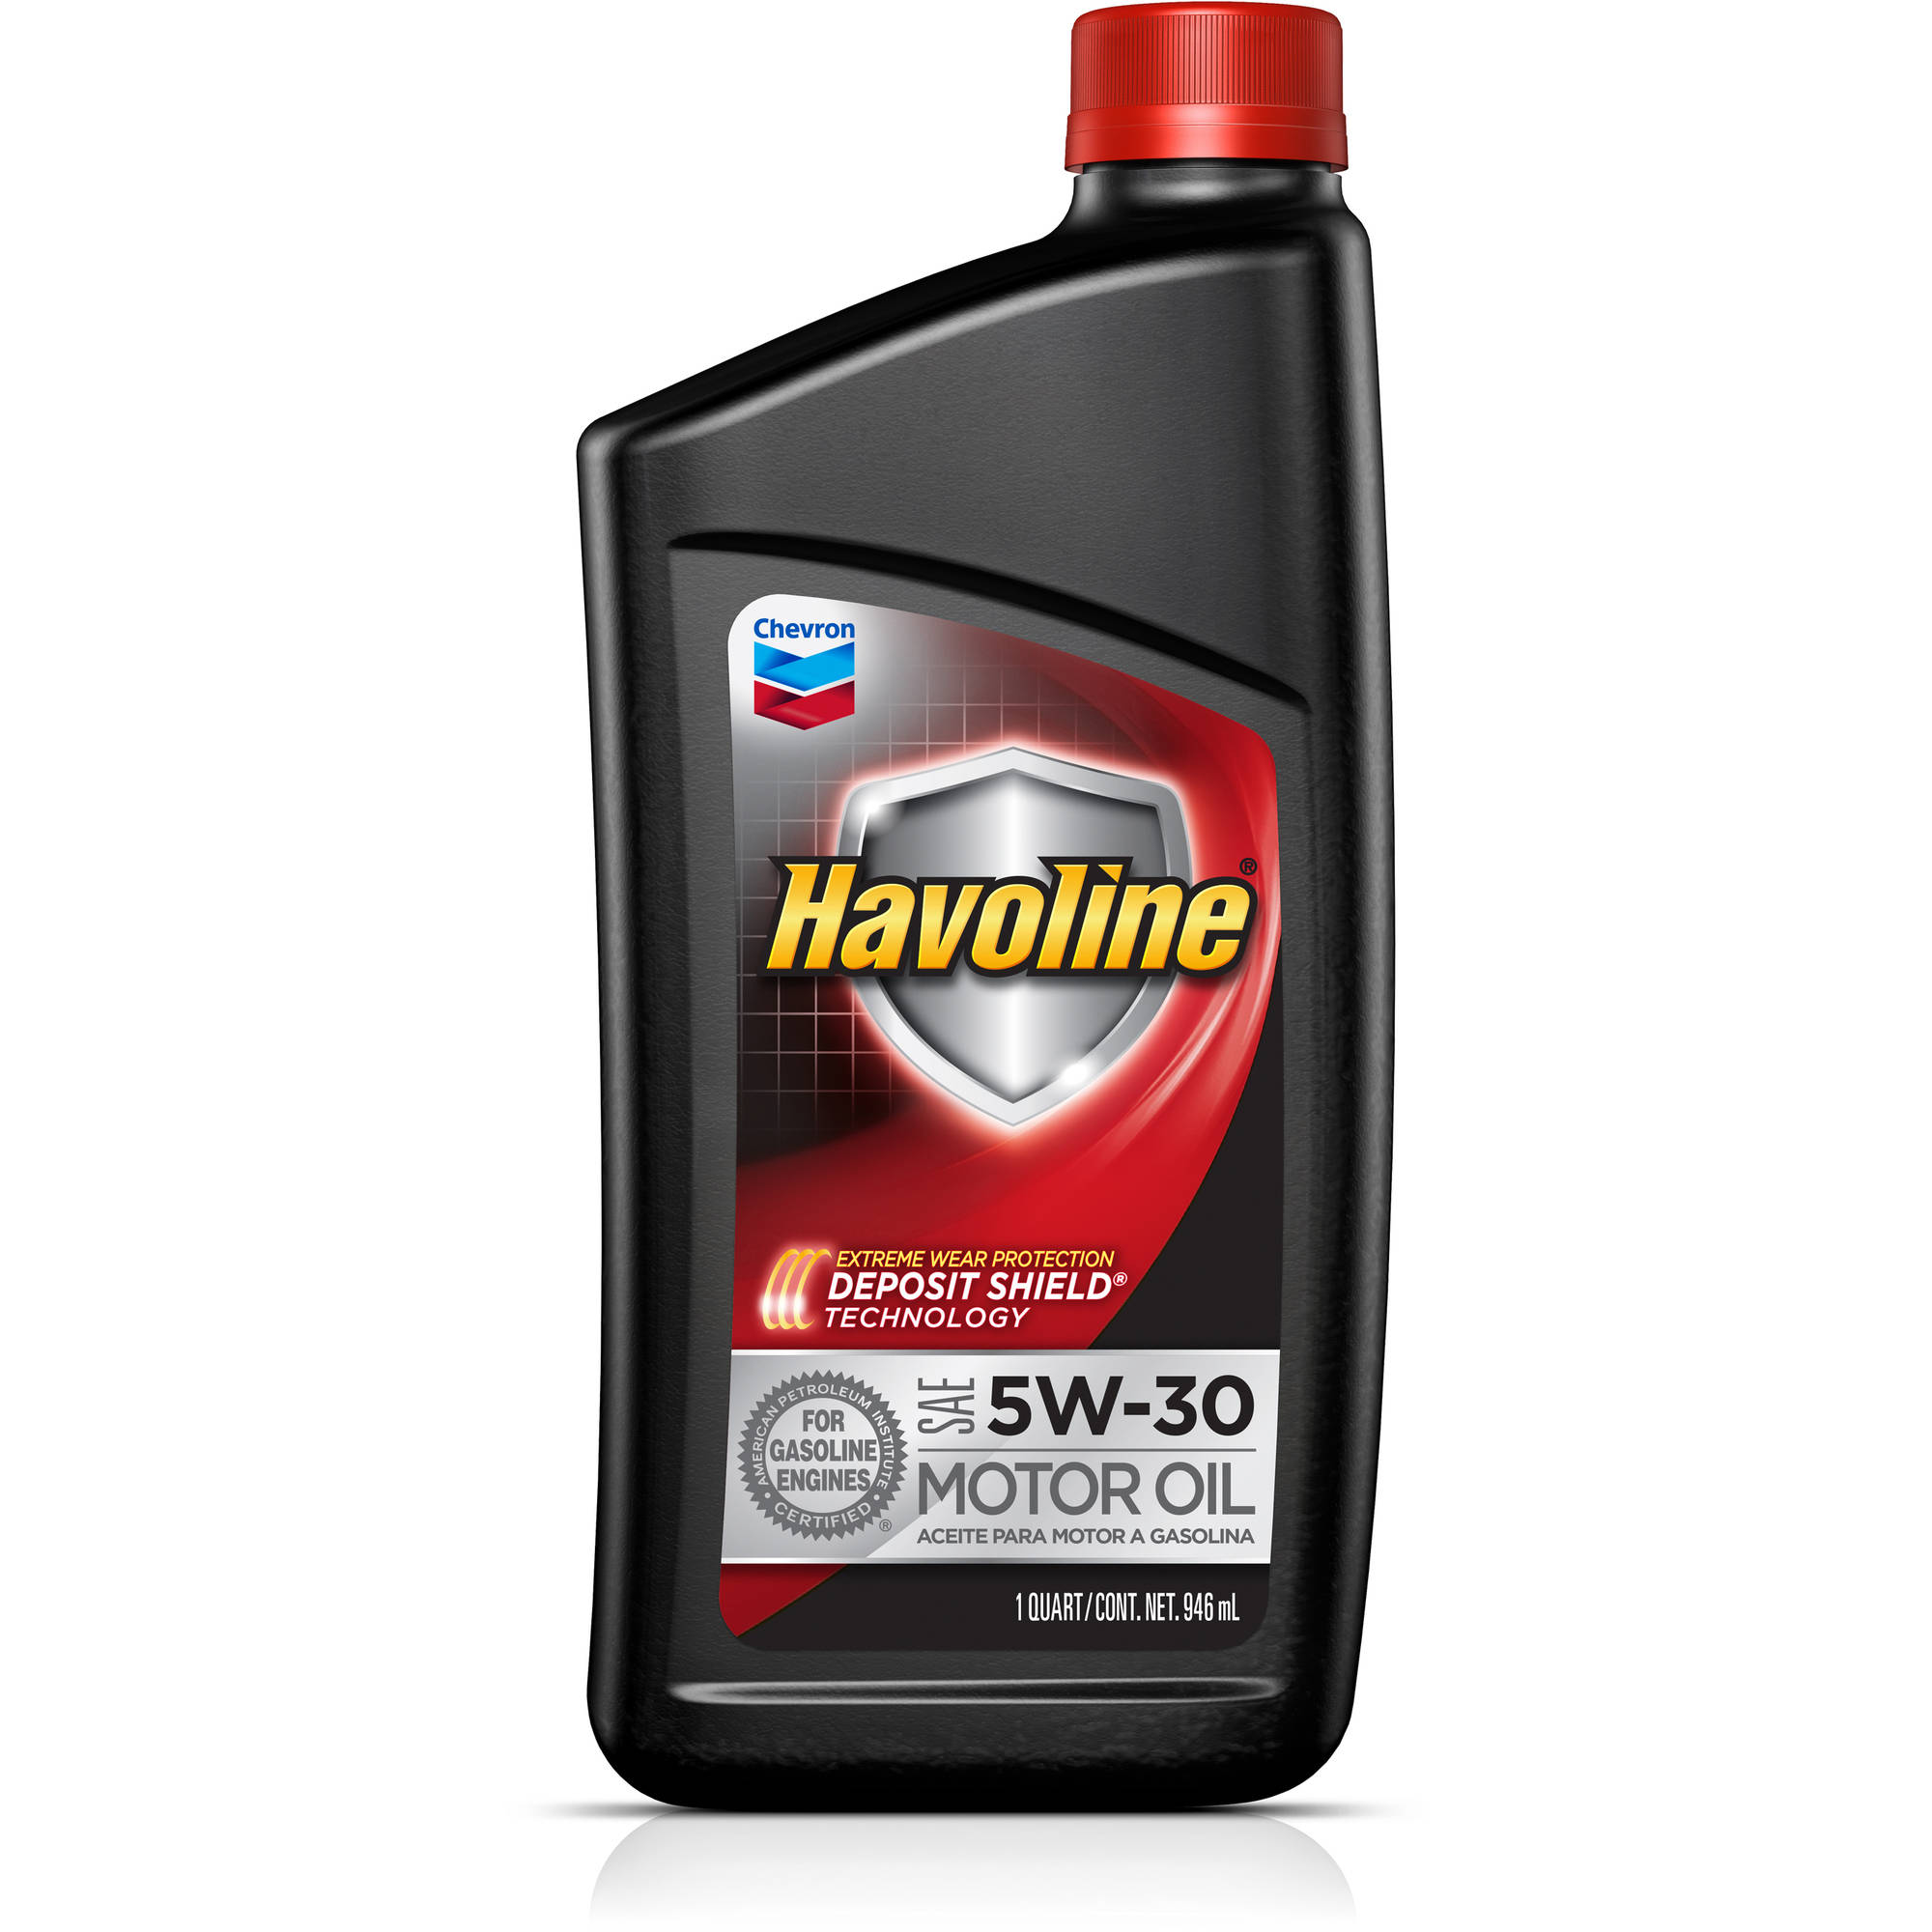 Havoline with Deposit Shield 5W-30 Conventional Motor Oil, 1 qt.